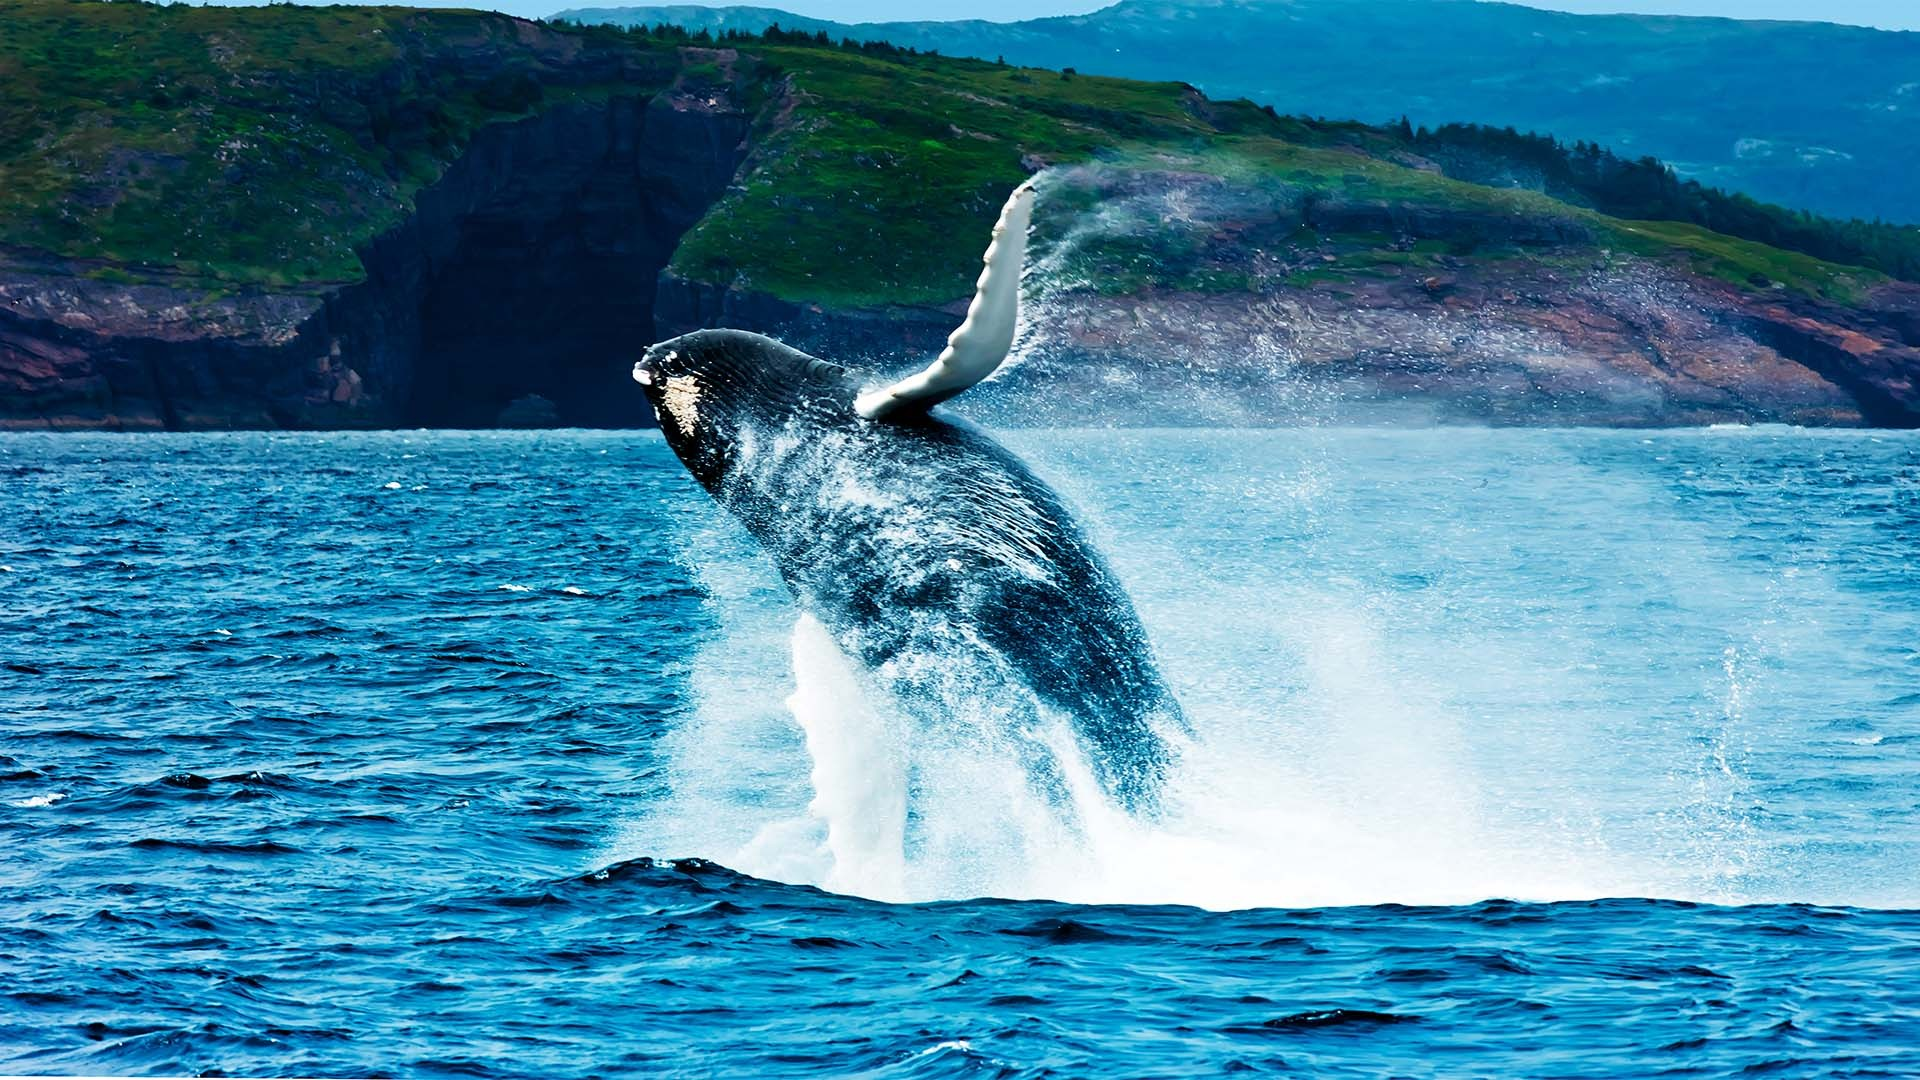 Breaching whale in Newfoundland and Labrador, Canada